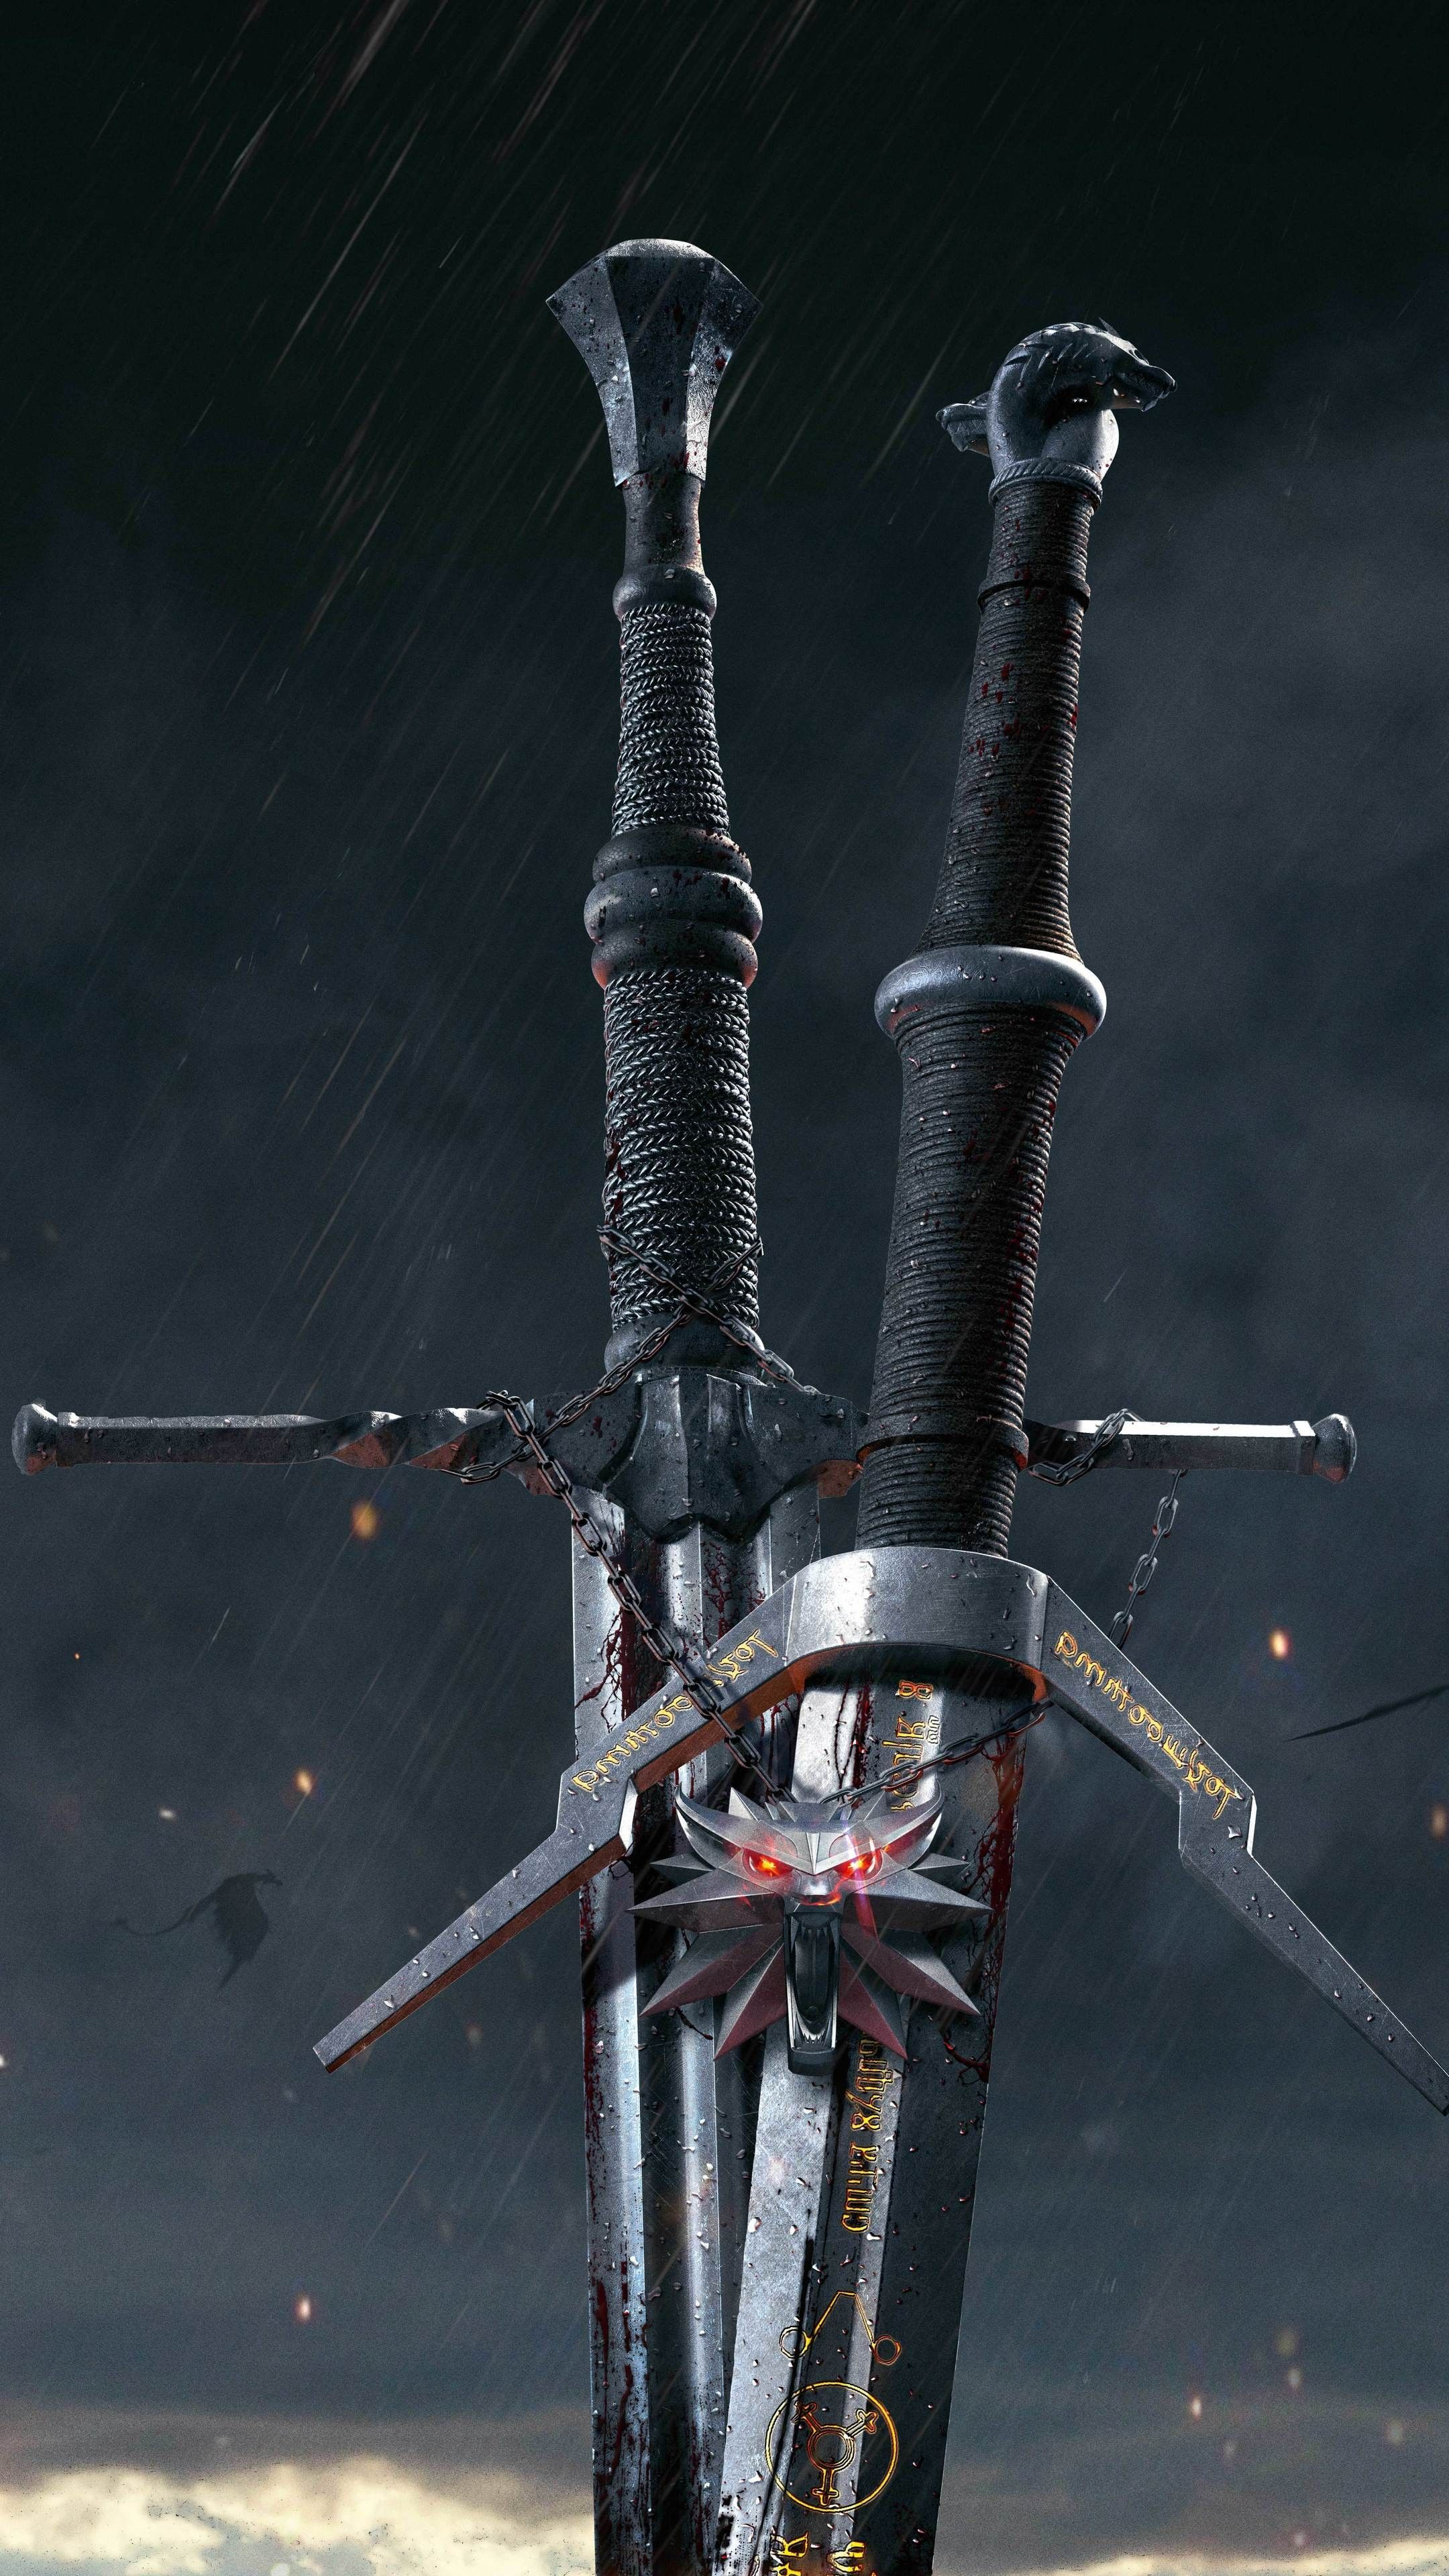 The Witcher 3 Iphone Wallpaper Witcher Tatuagem Witcher